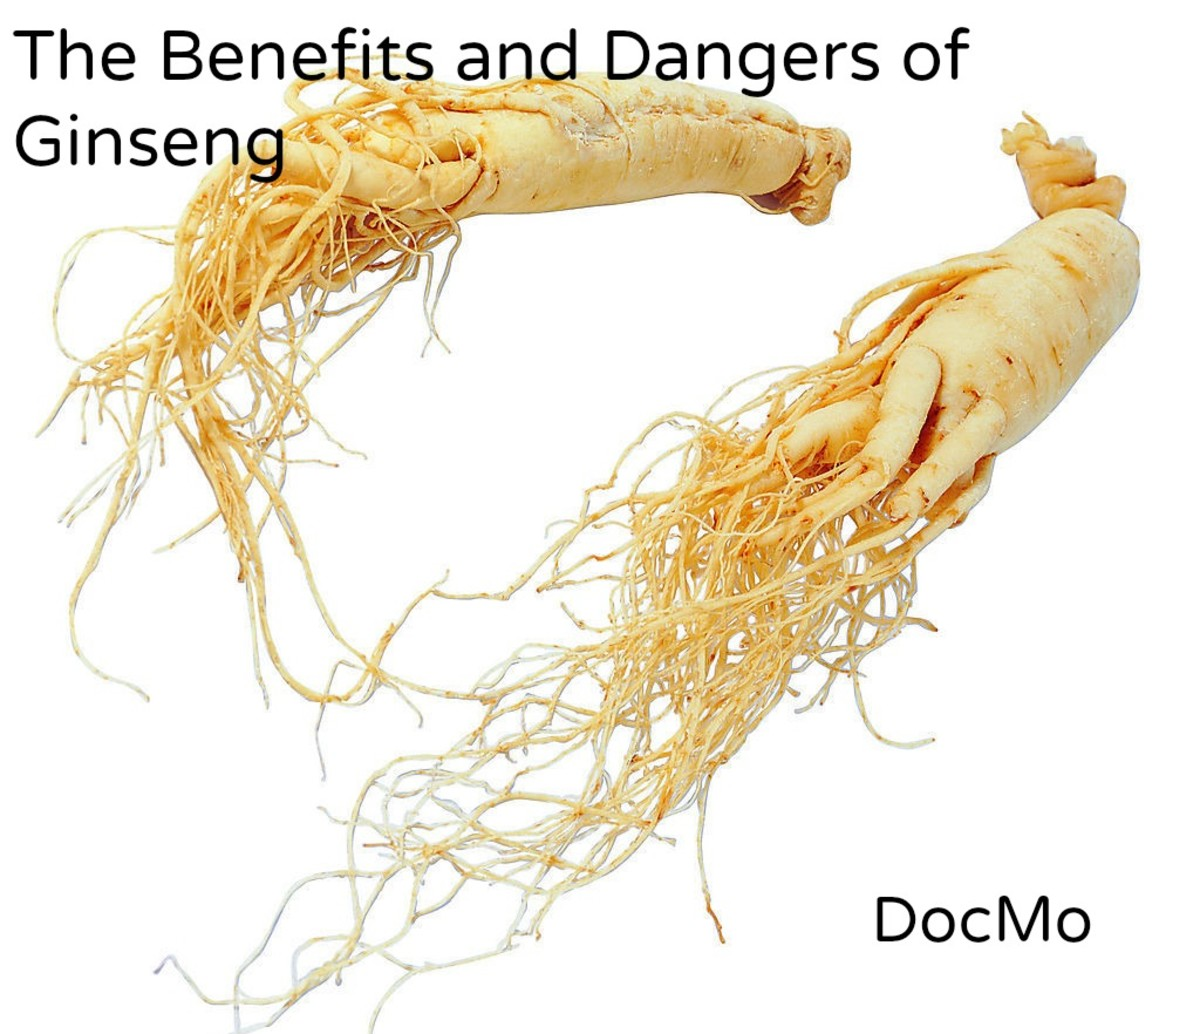 Benefits and Dangers of Ginseng